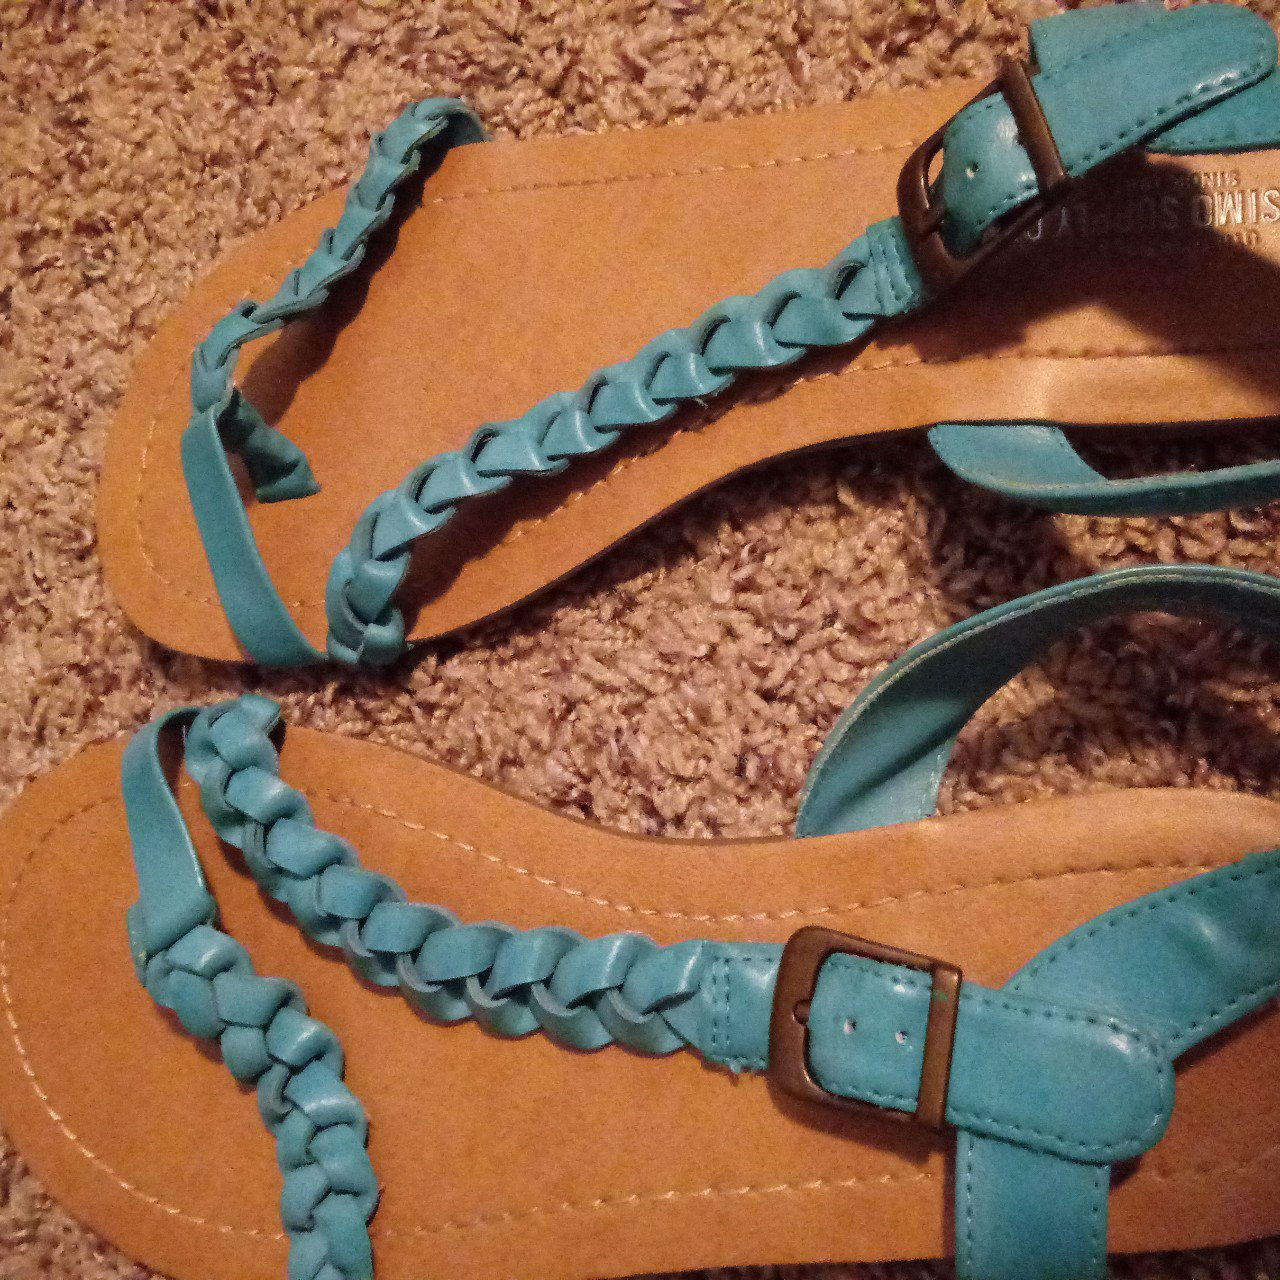 5017854e1c5d02 Teal braided sandals. Worn maybe three times. Super cute and - Depop